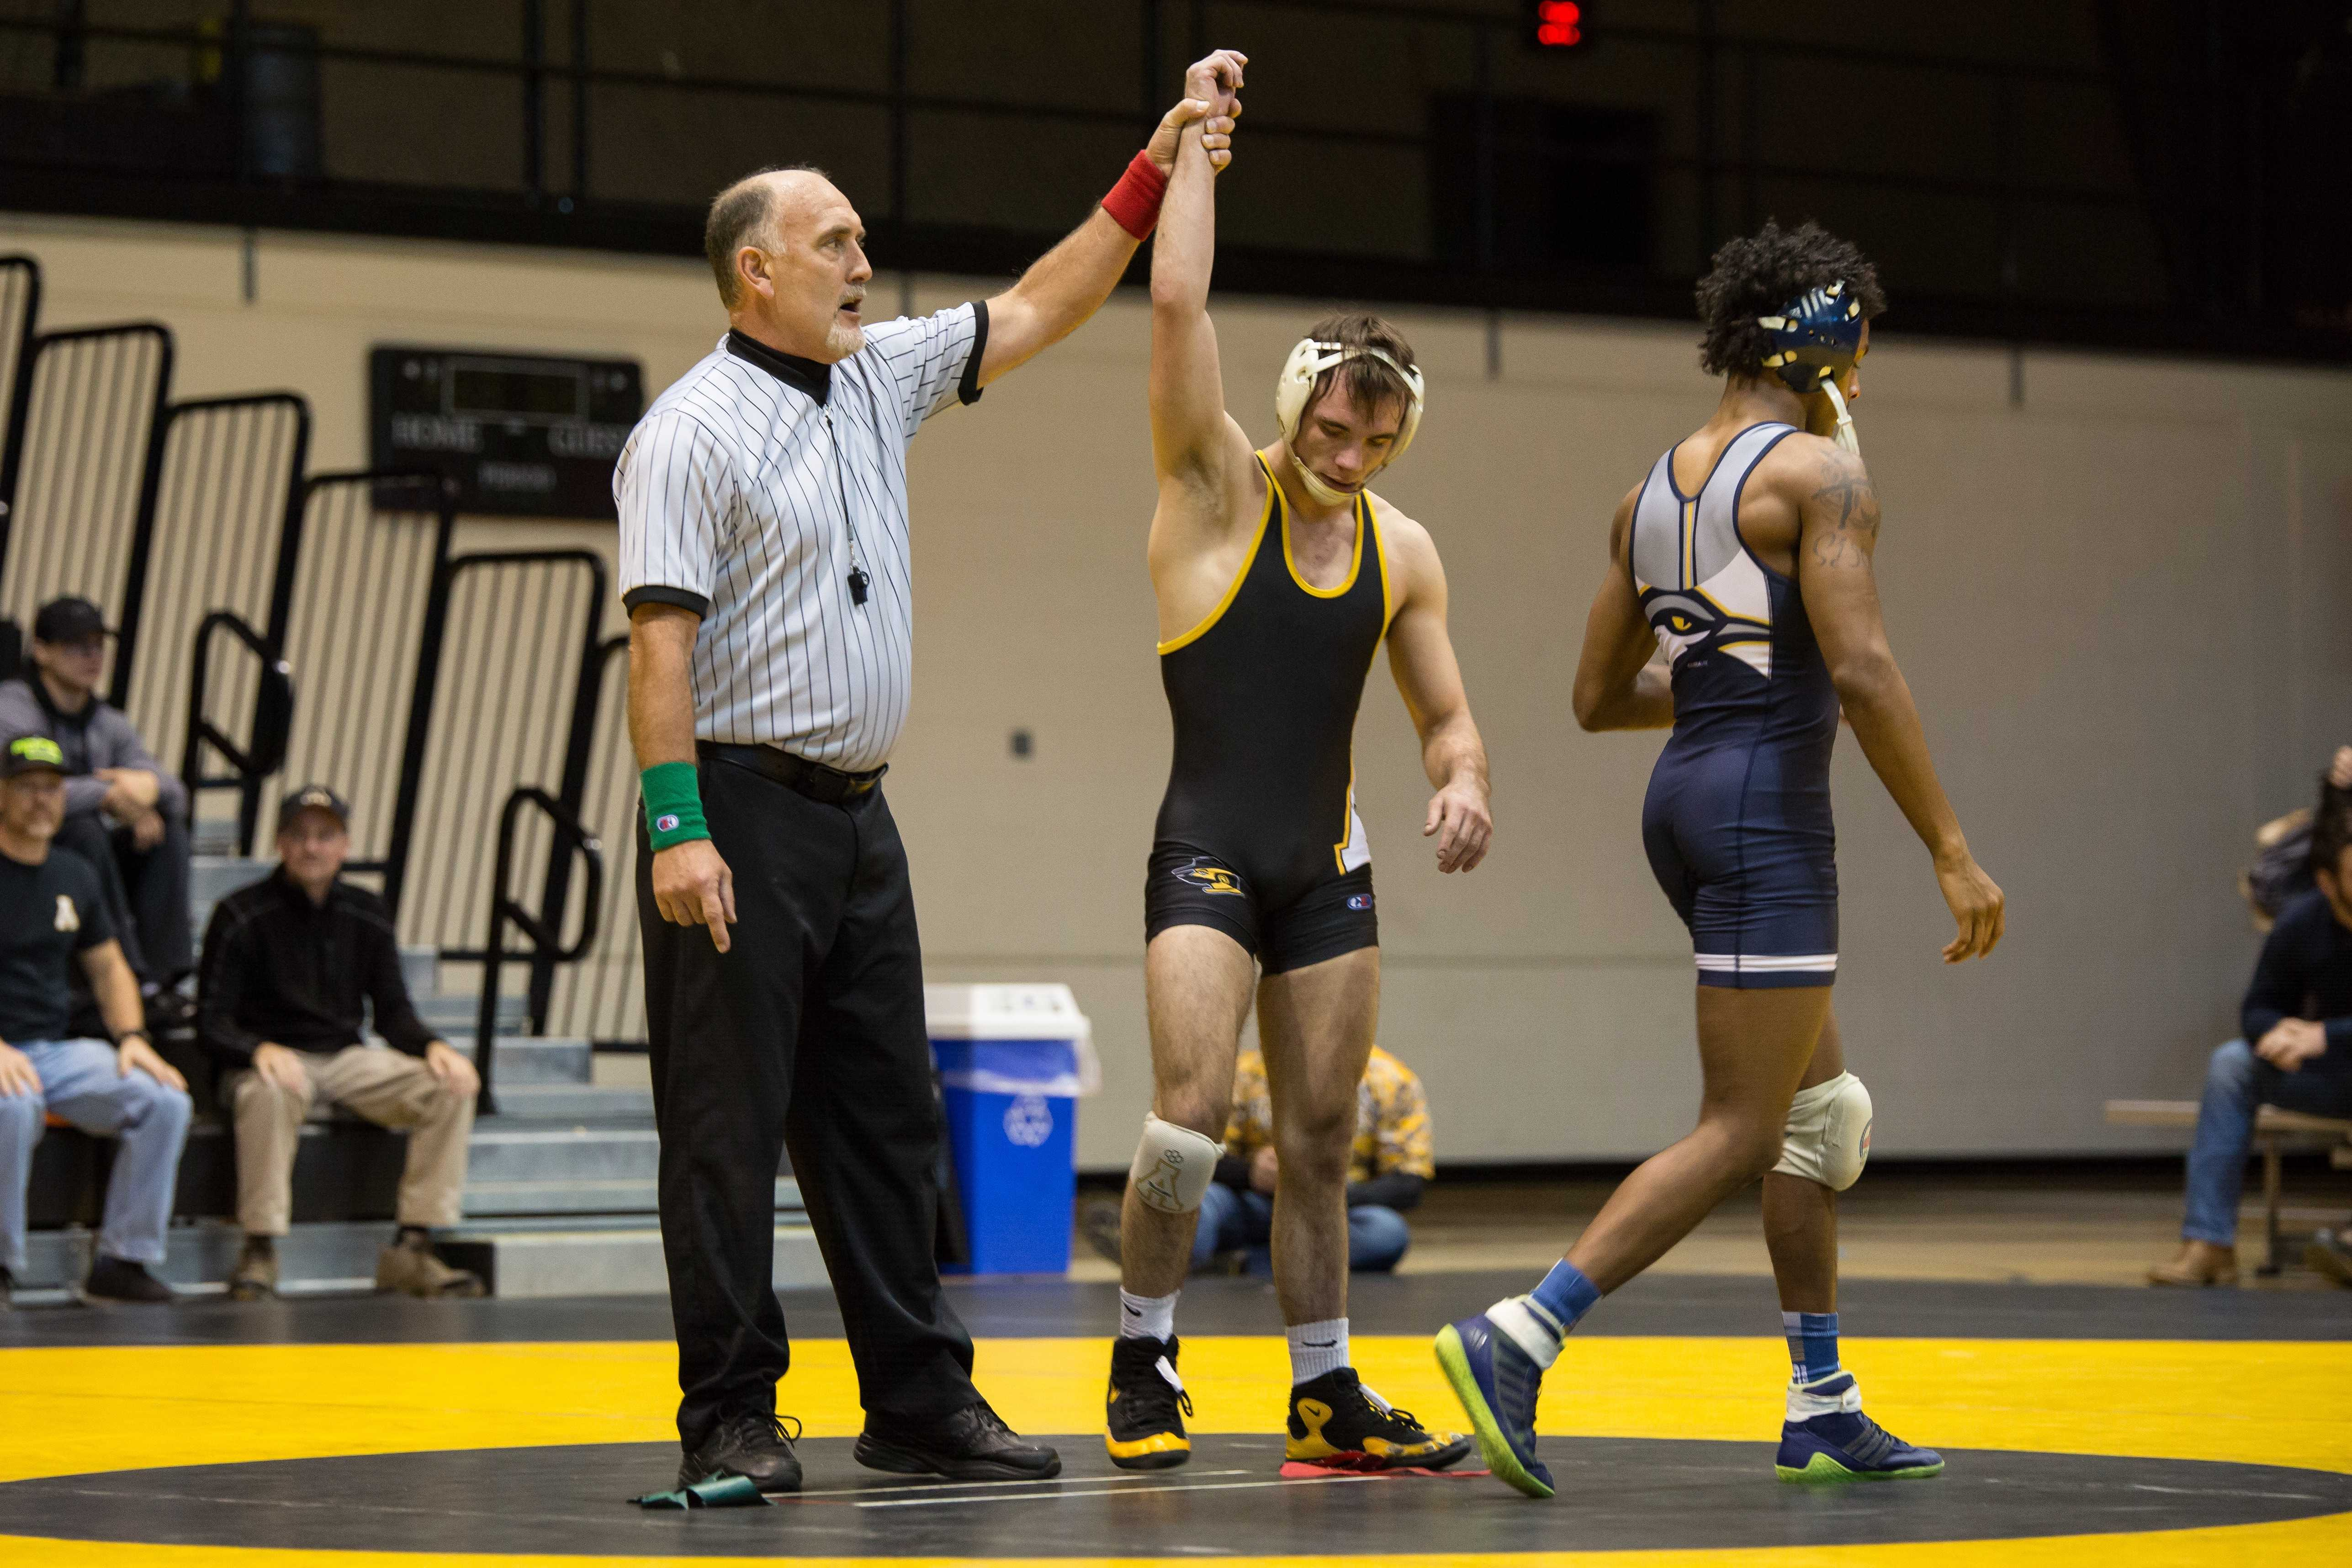 App State's Vito Pasone secures a major decision over Chattanooga's Alonzo Allen.